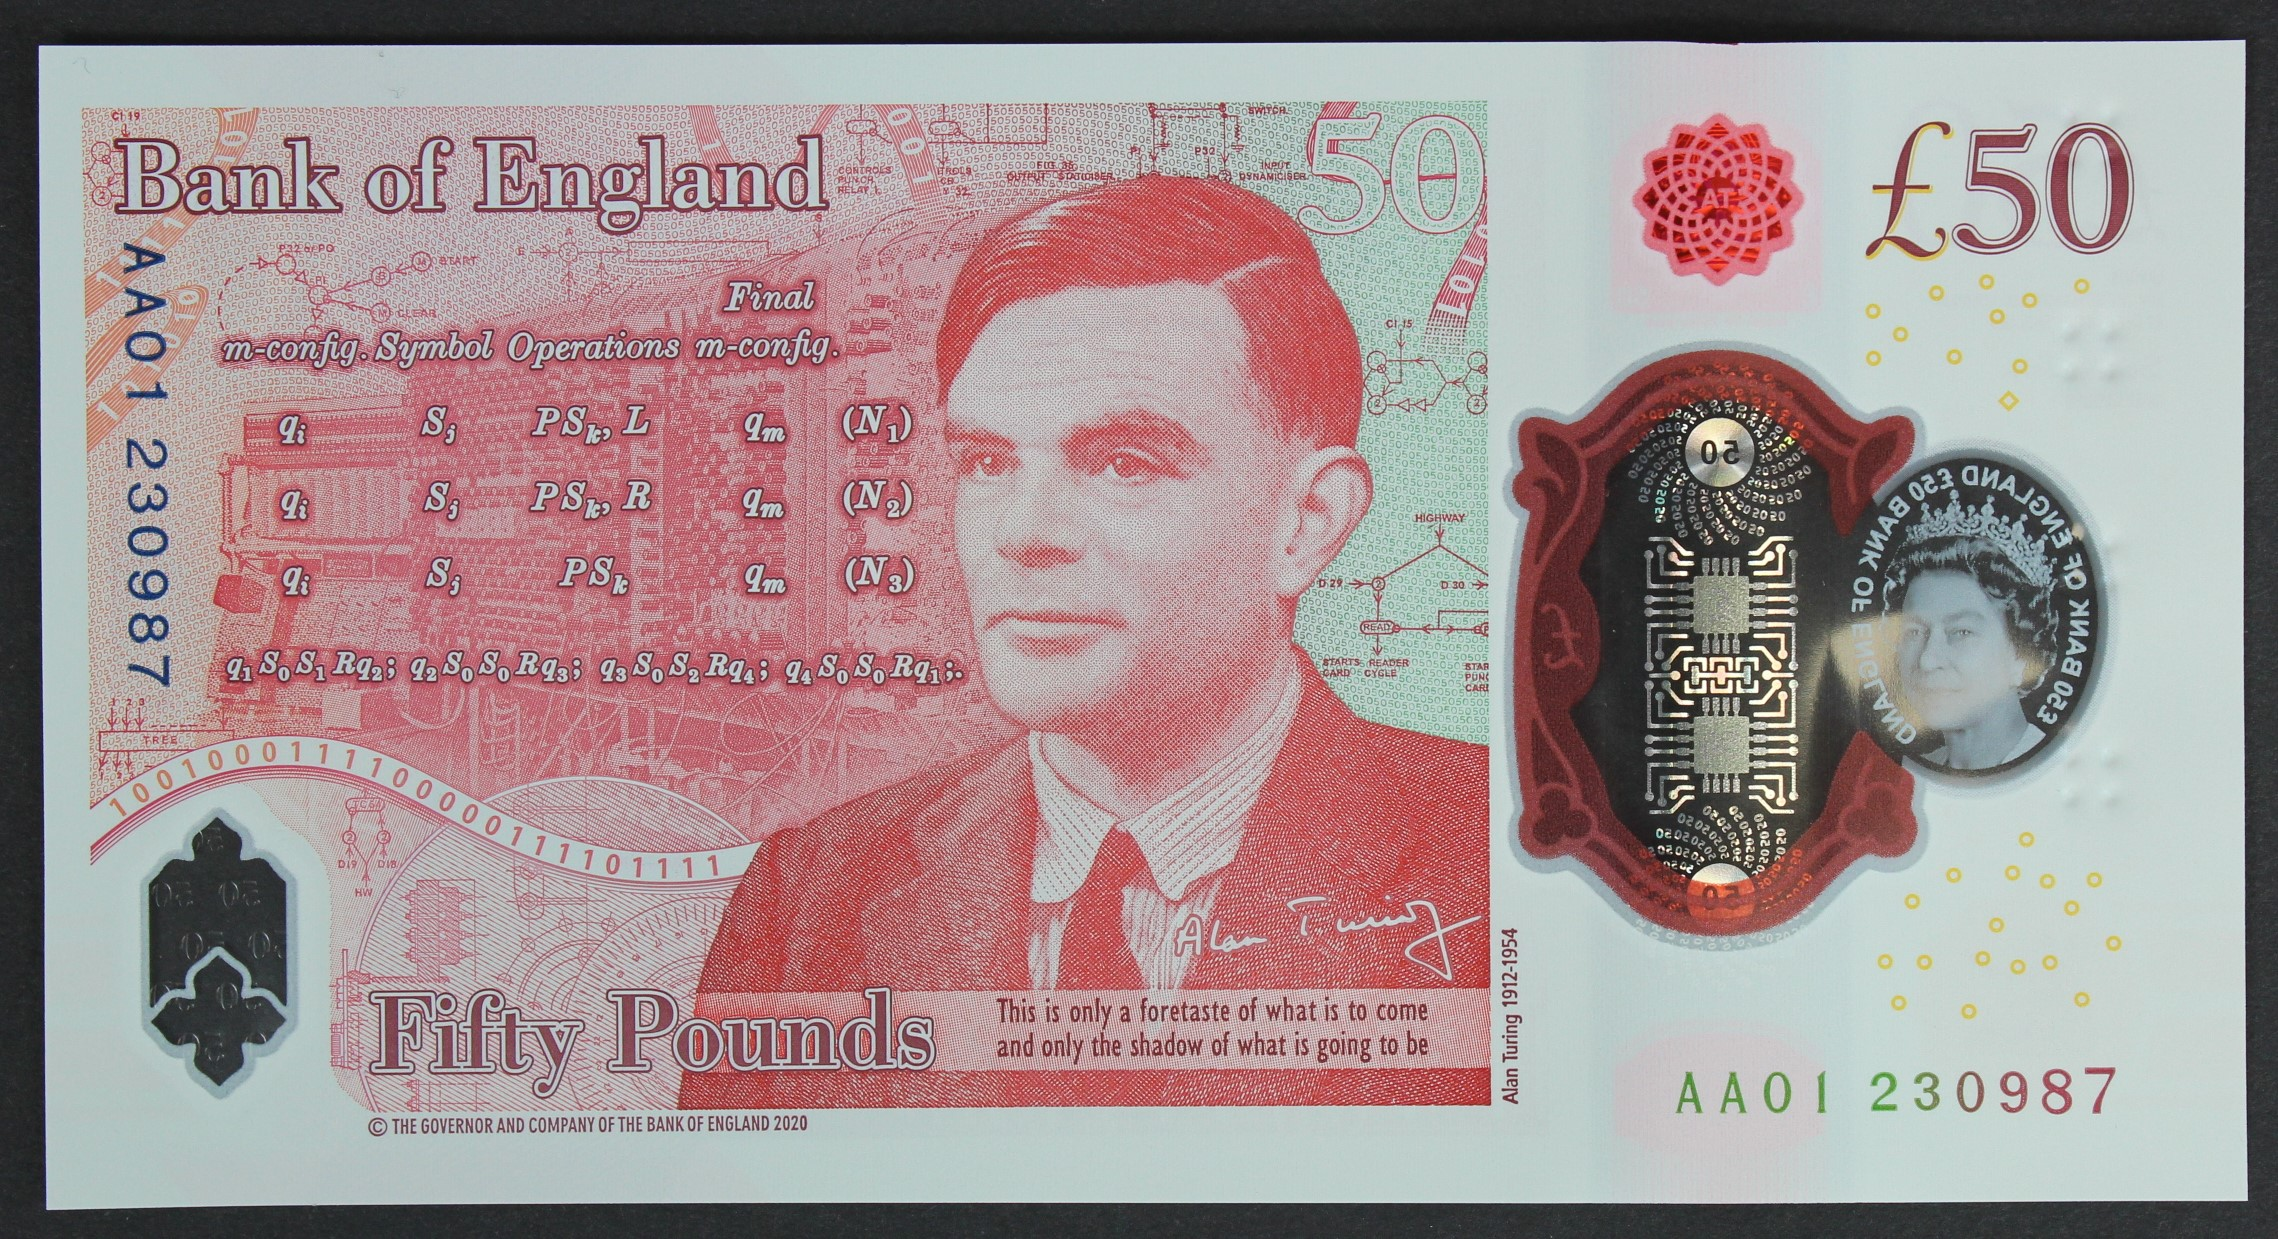 Sarah John 50 Pounds, new polymer issue with portrait of Alan Turing on reverse, a FIRST RUN '